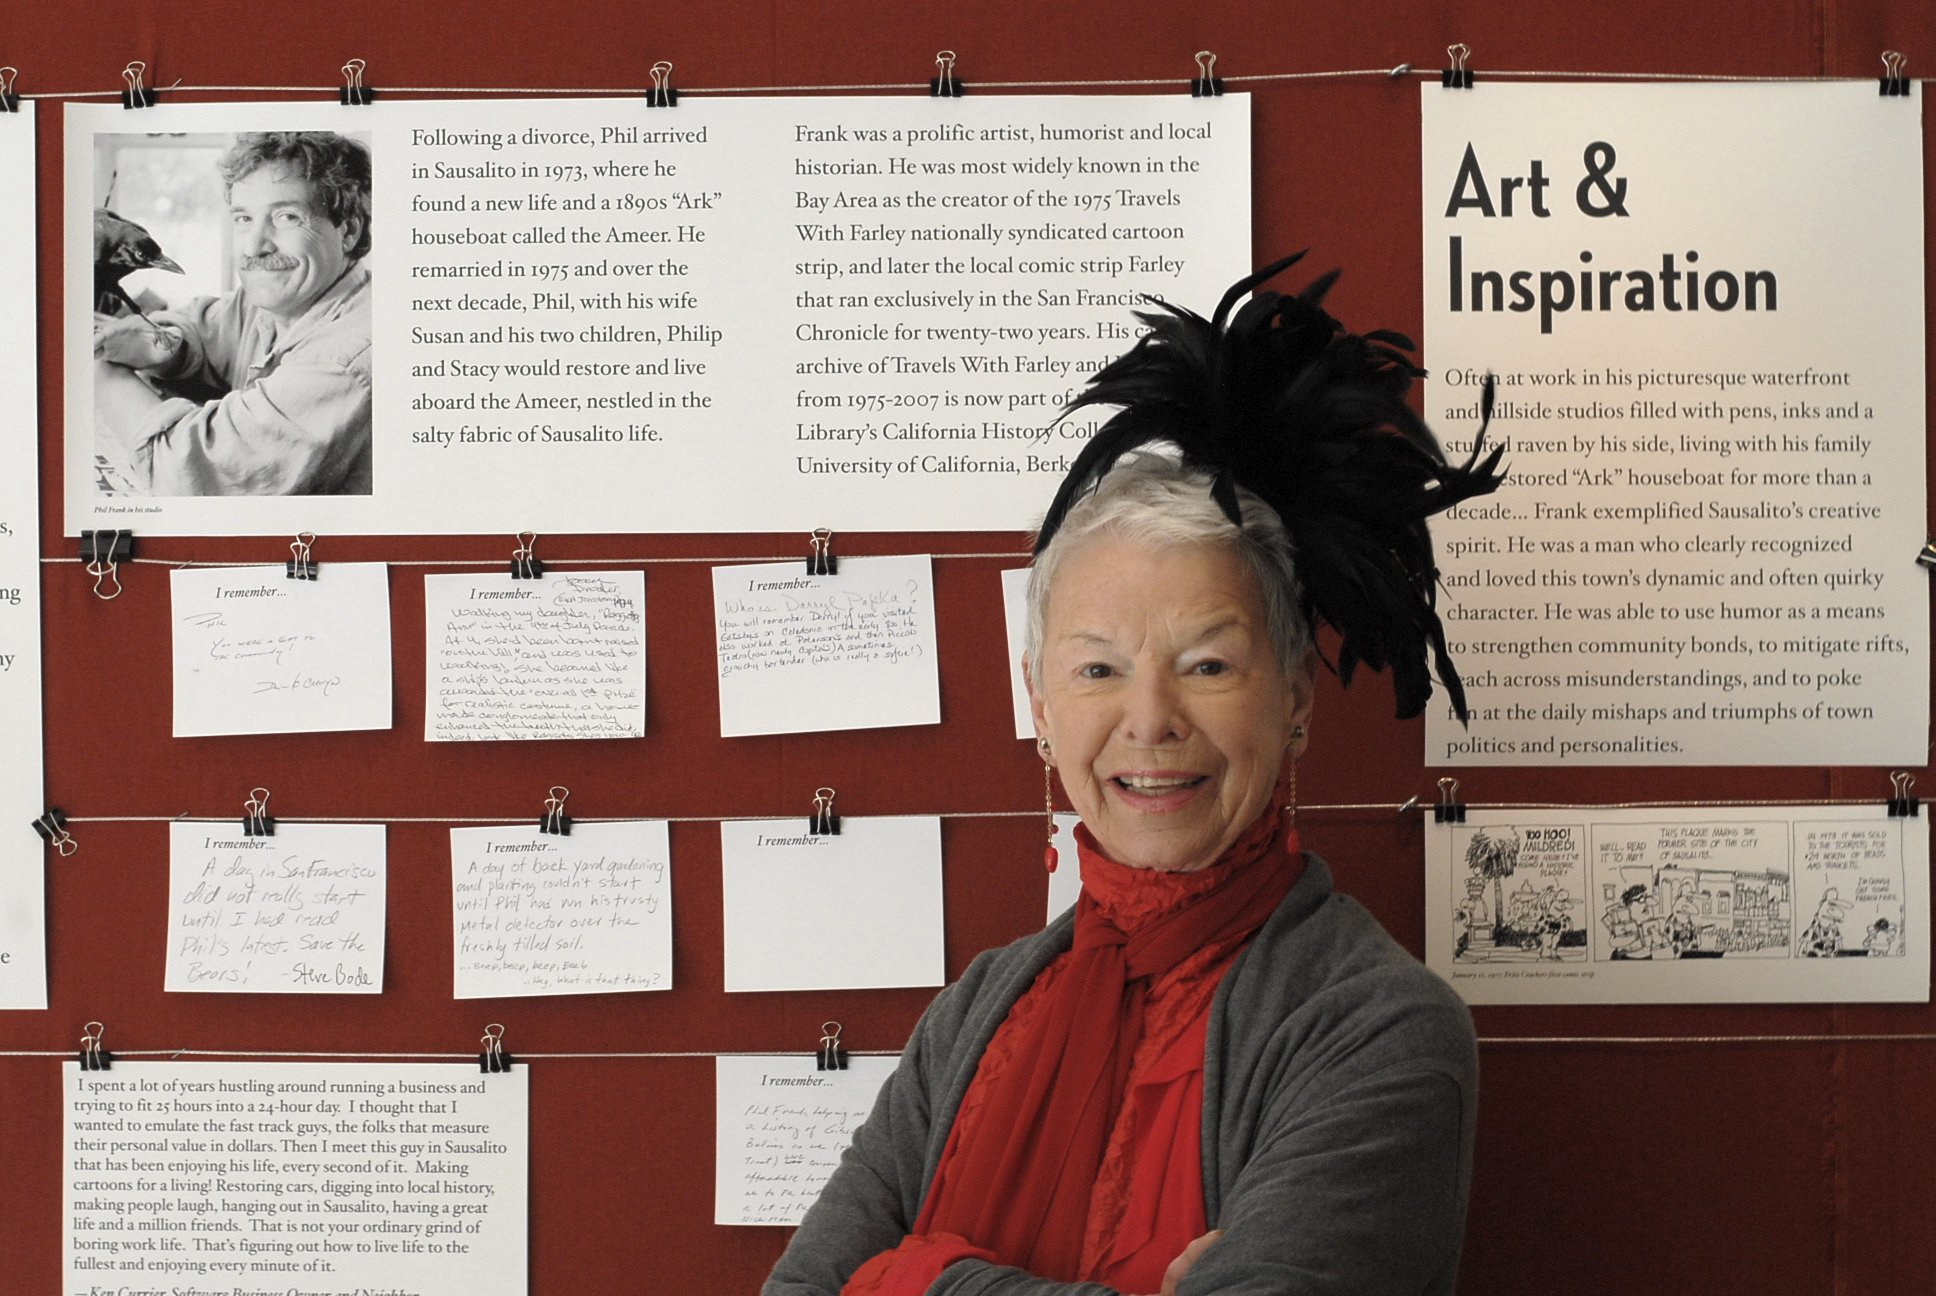 Jeanne Fidler with the display of Phil Frank cartoons at the Historical Society's Exhibit Room. Photo by Steefenie Wicks